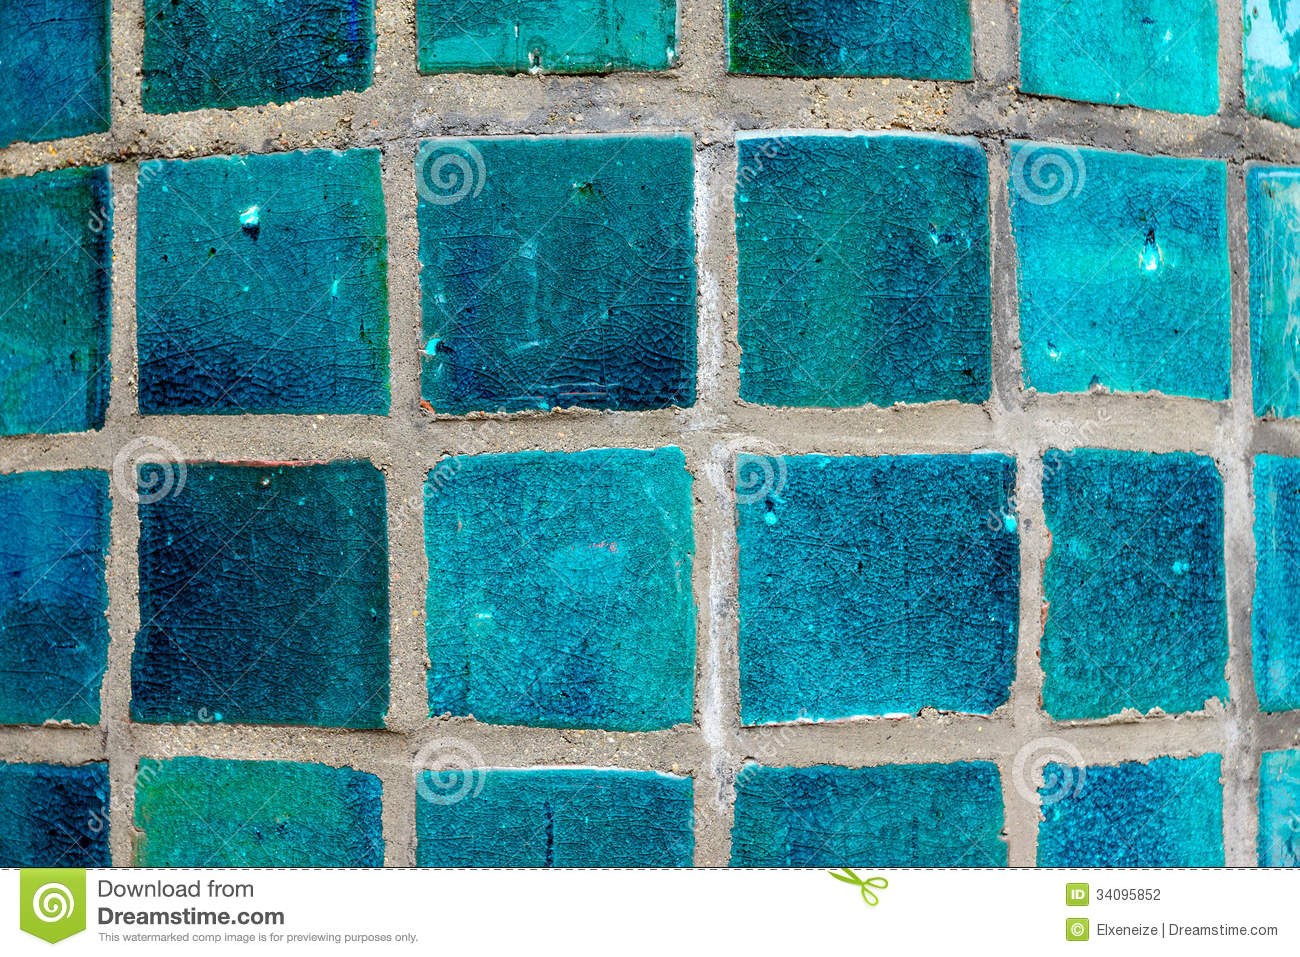 Turquoise Tile turquoise tiles stock photography - image: 34095852